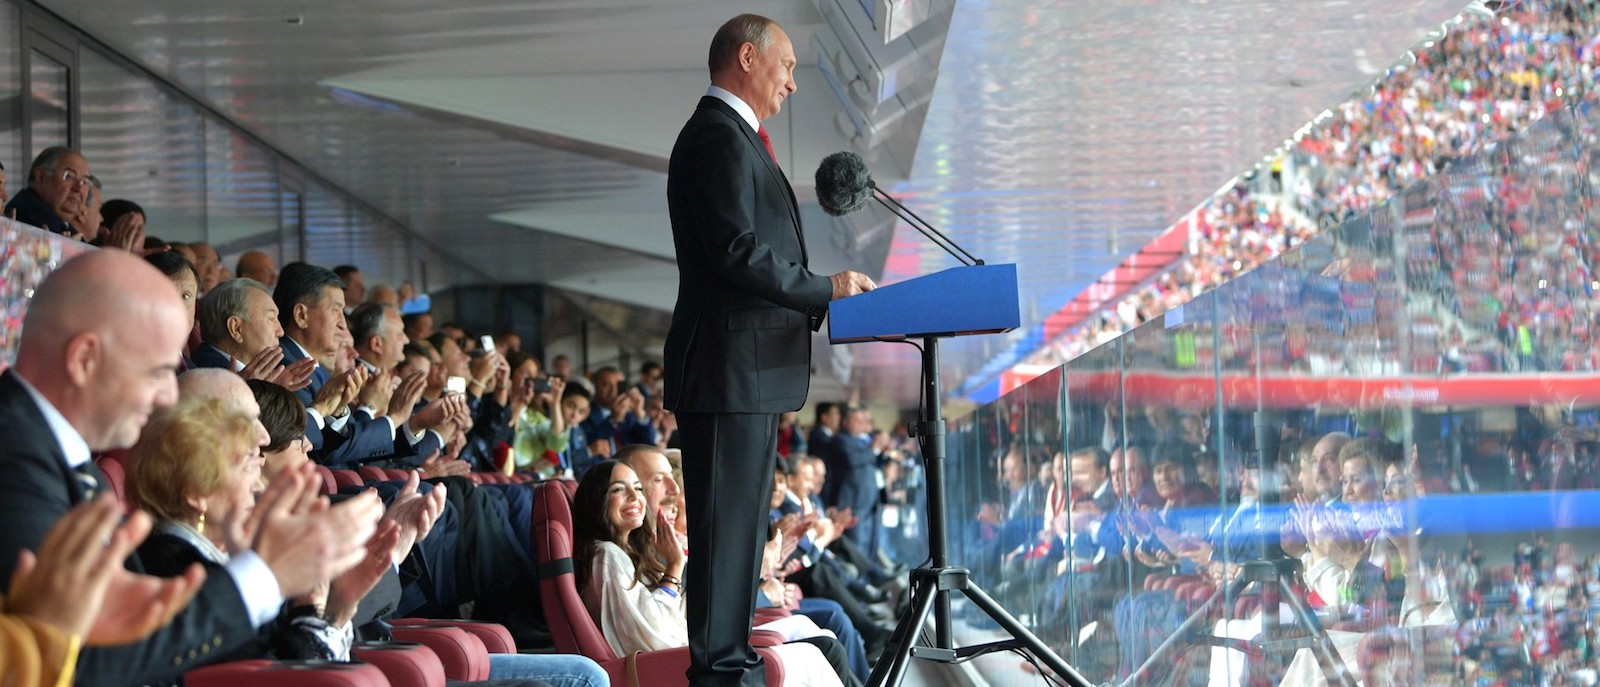 Russian President Vladimir Putin at the opening of the 2018 FIFA World Cup (Photo: Kremlin.ru)